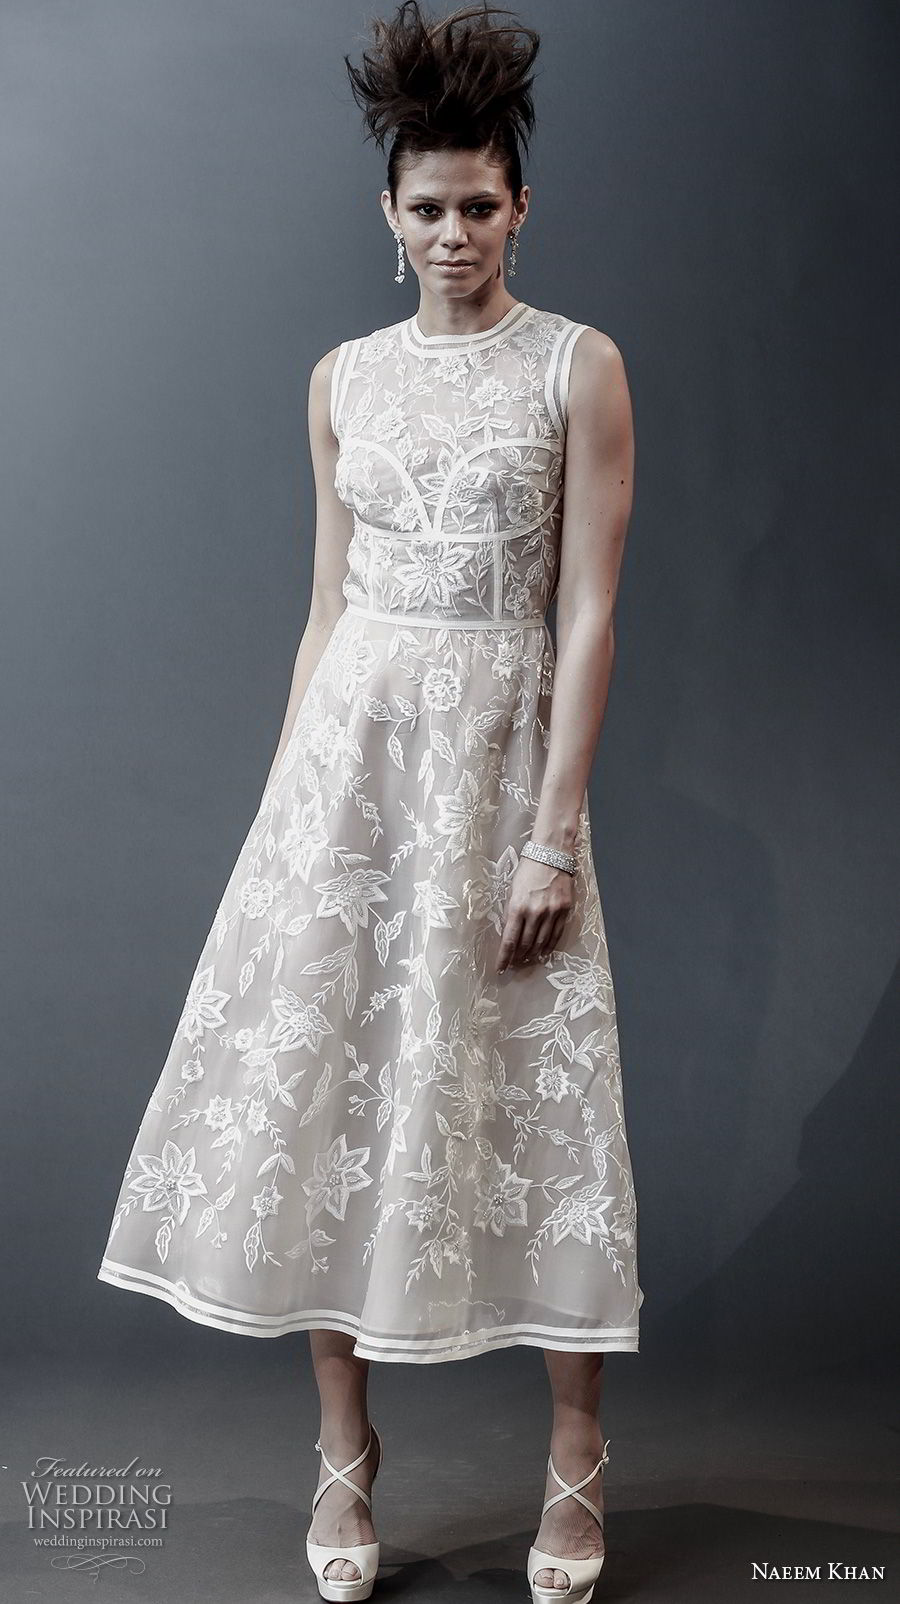 c12aed9a00c33 naeem khan spring 2019 bridal sleeveless jewel neck full embellishment  romantic tea length short wedding dress